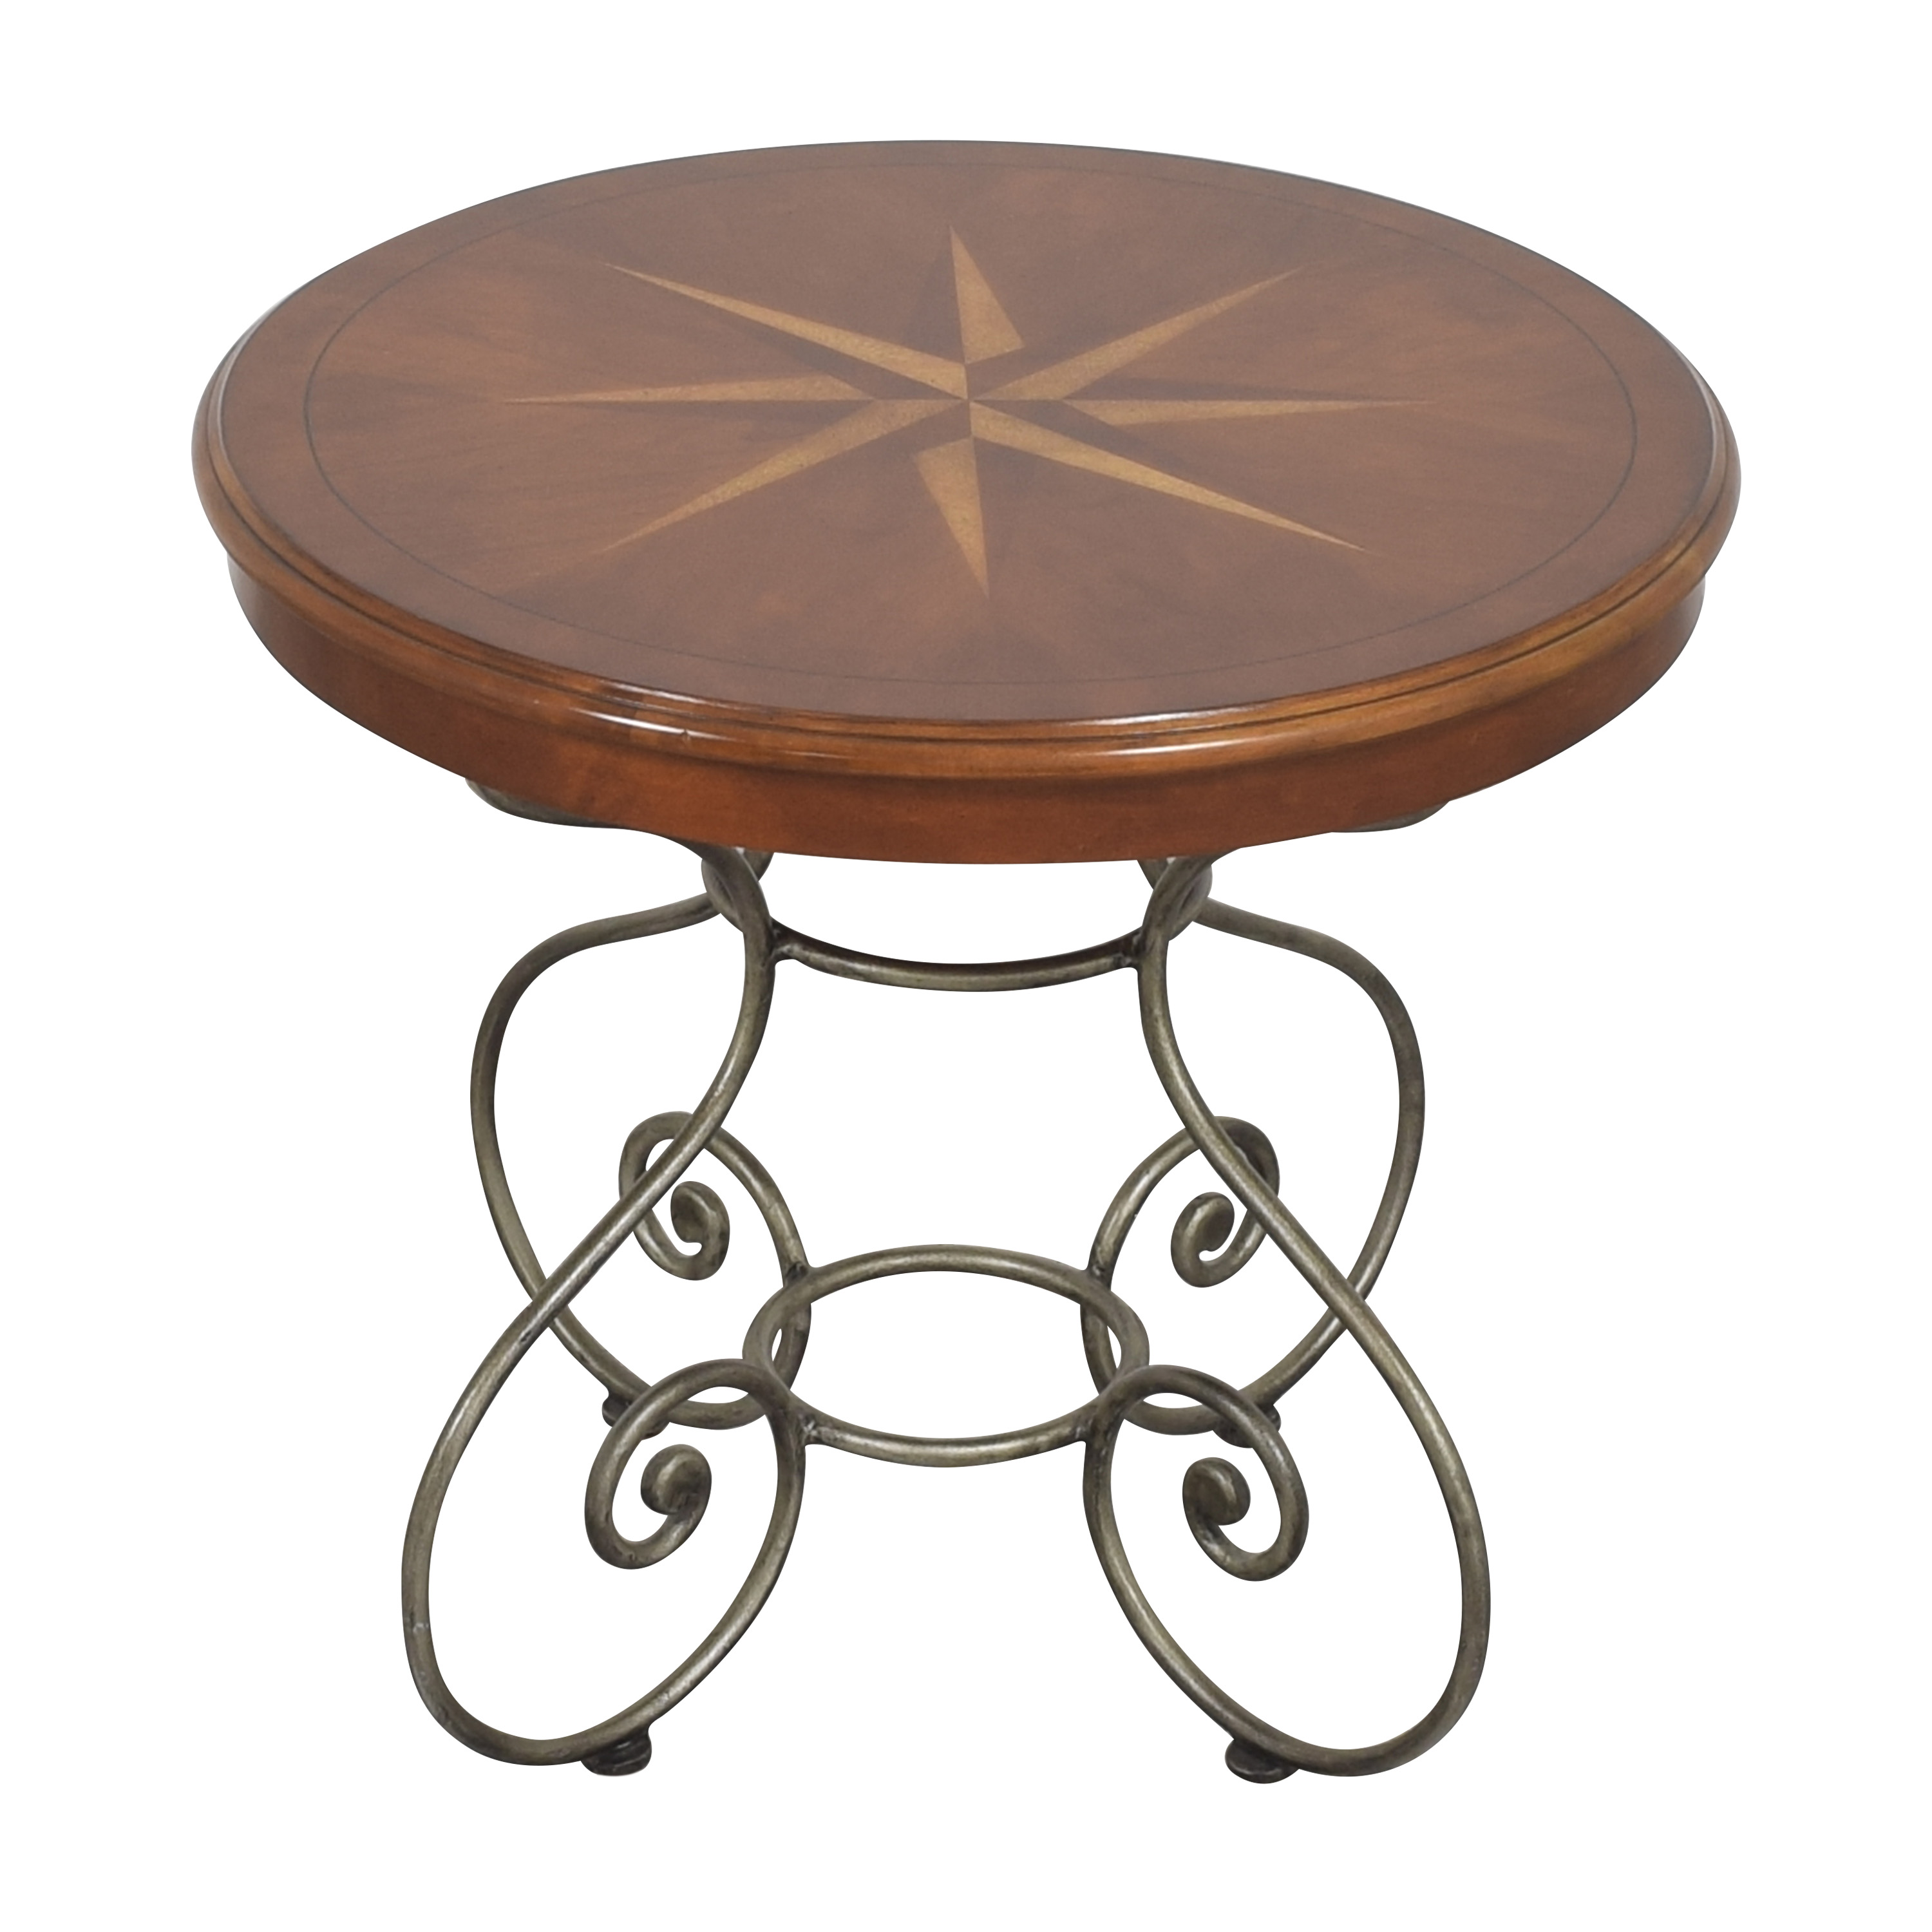 buy Ethan Allen Ornate Round End Table Ethan Allen Tables